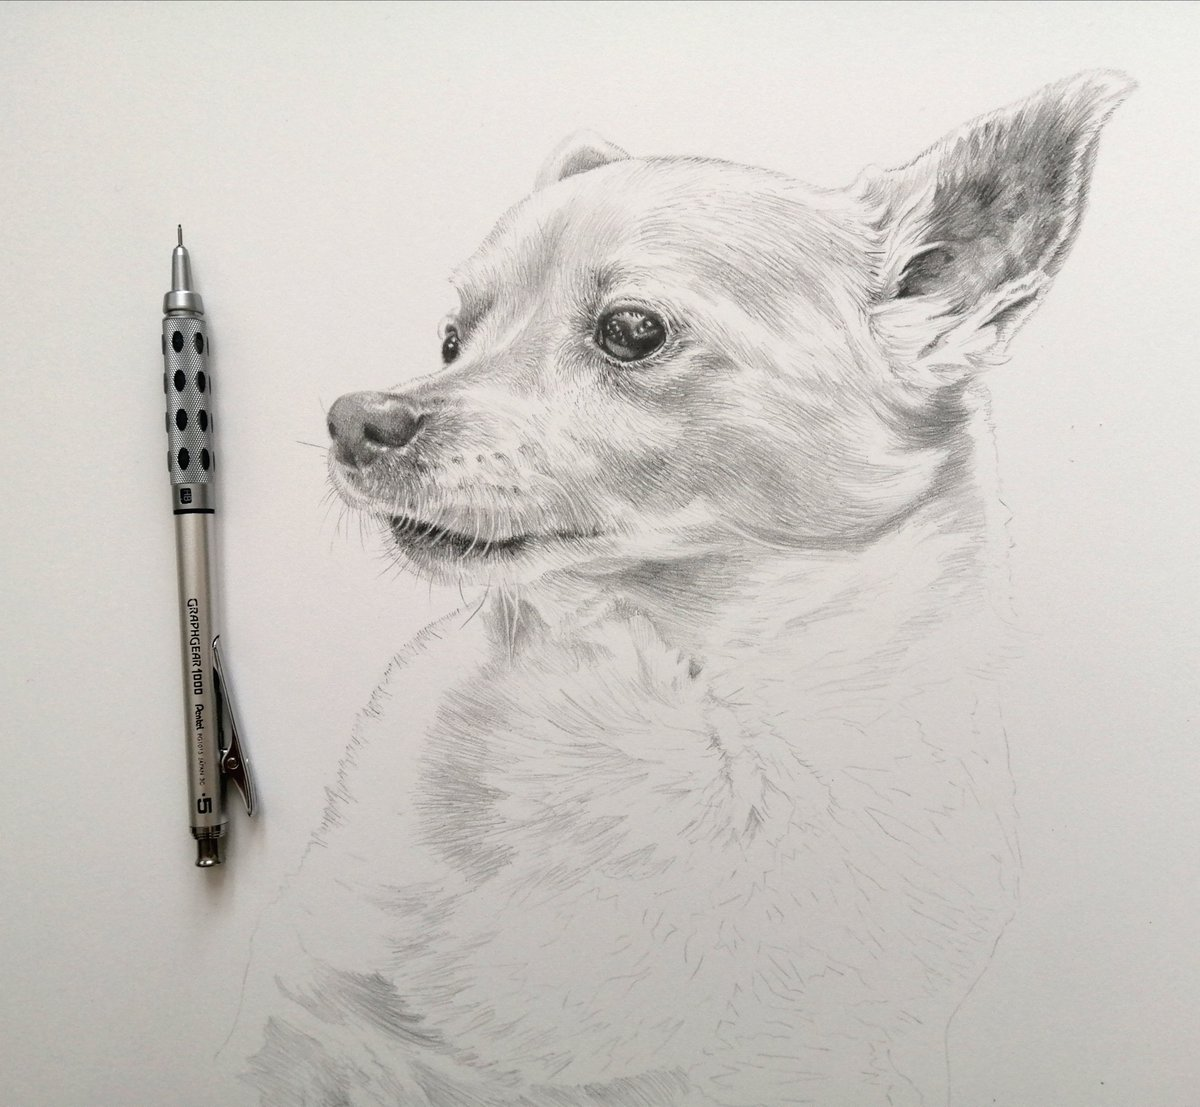 Focusing on the shadows between the fur. White dogs in graphite. 🖤 #workinprogress #dogs #graphite #pencilart https://t.co/nyBBdGNaXk